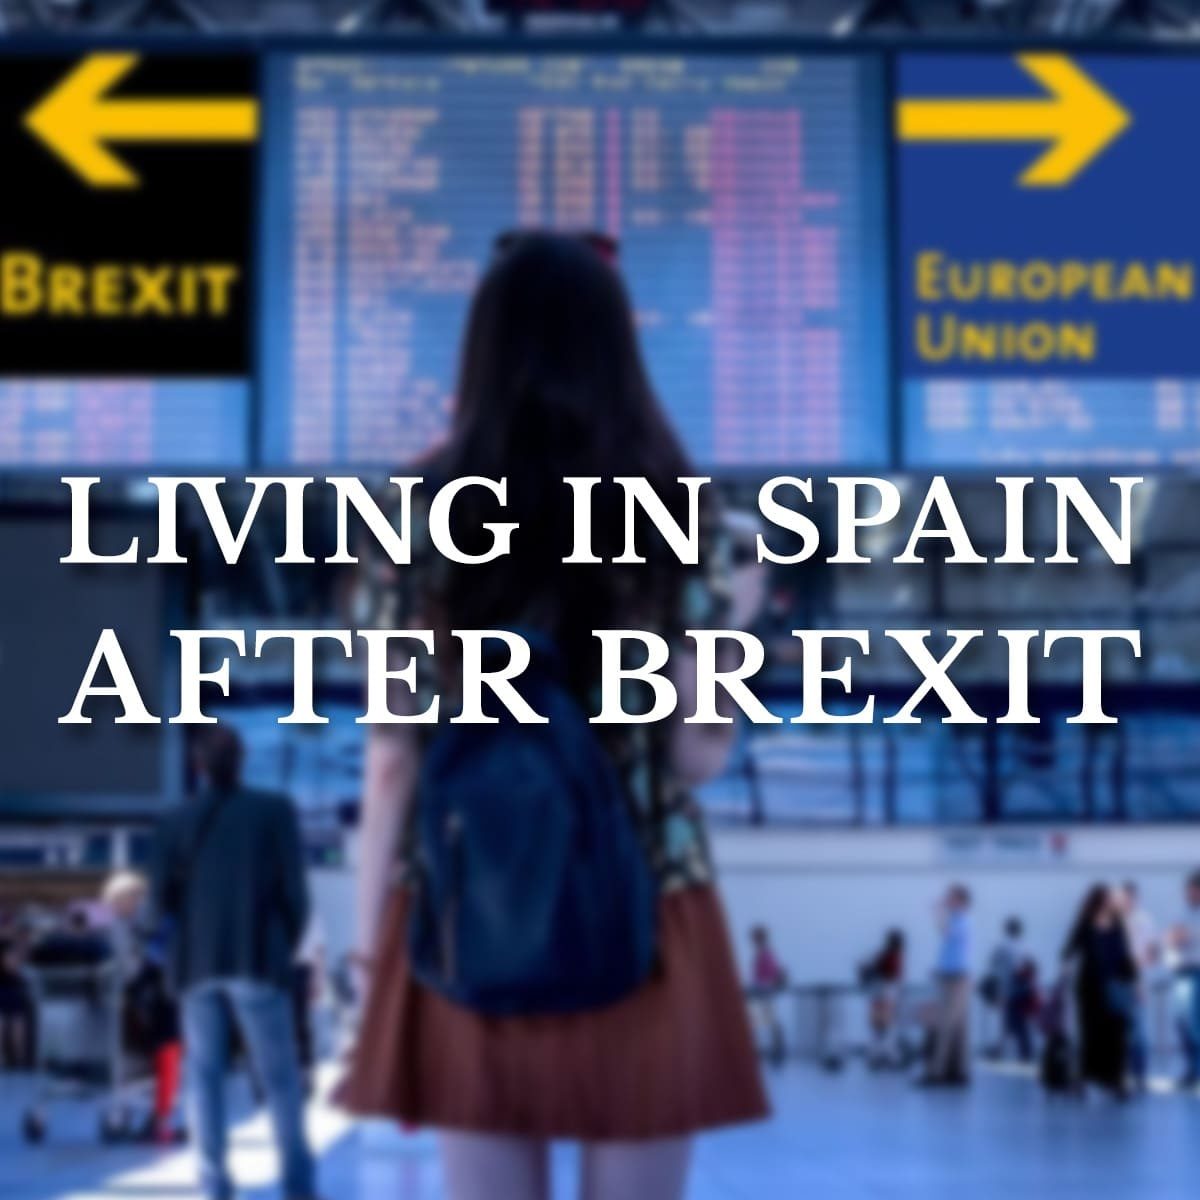 Living in Spain after Brexit